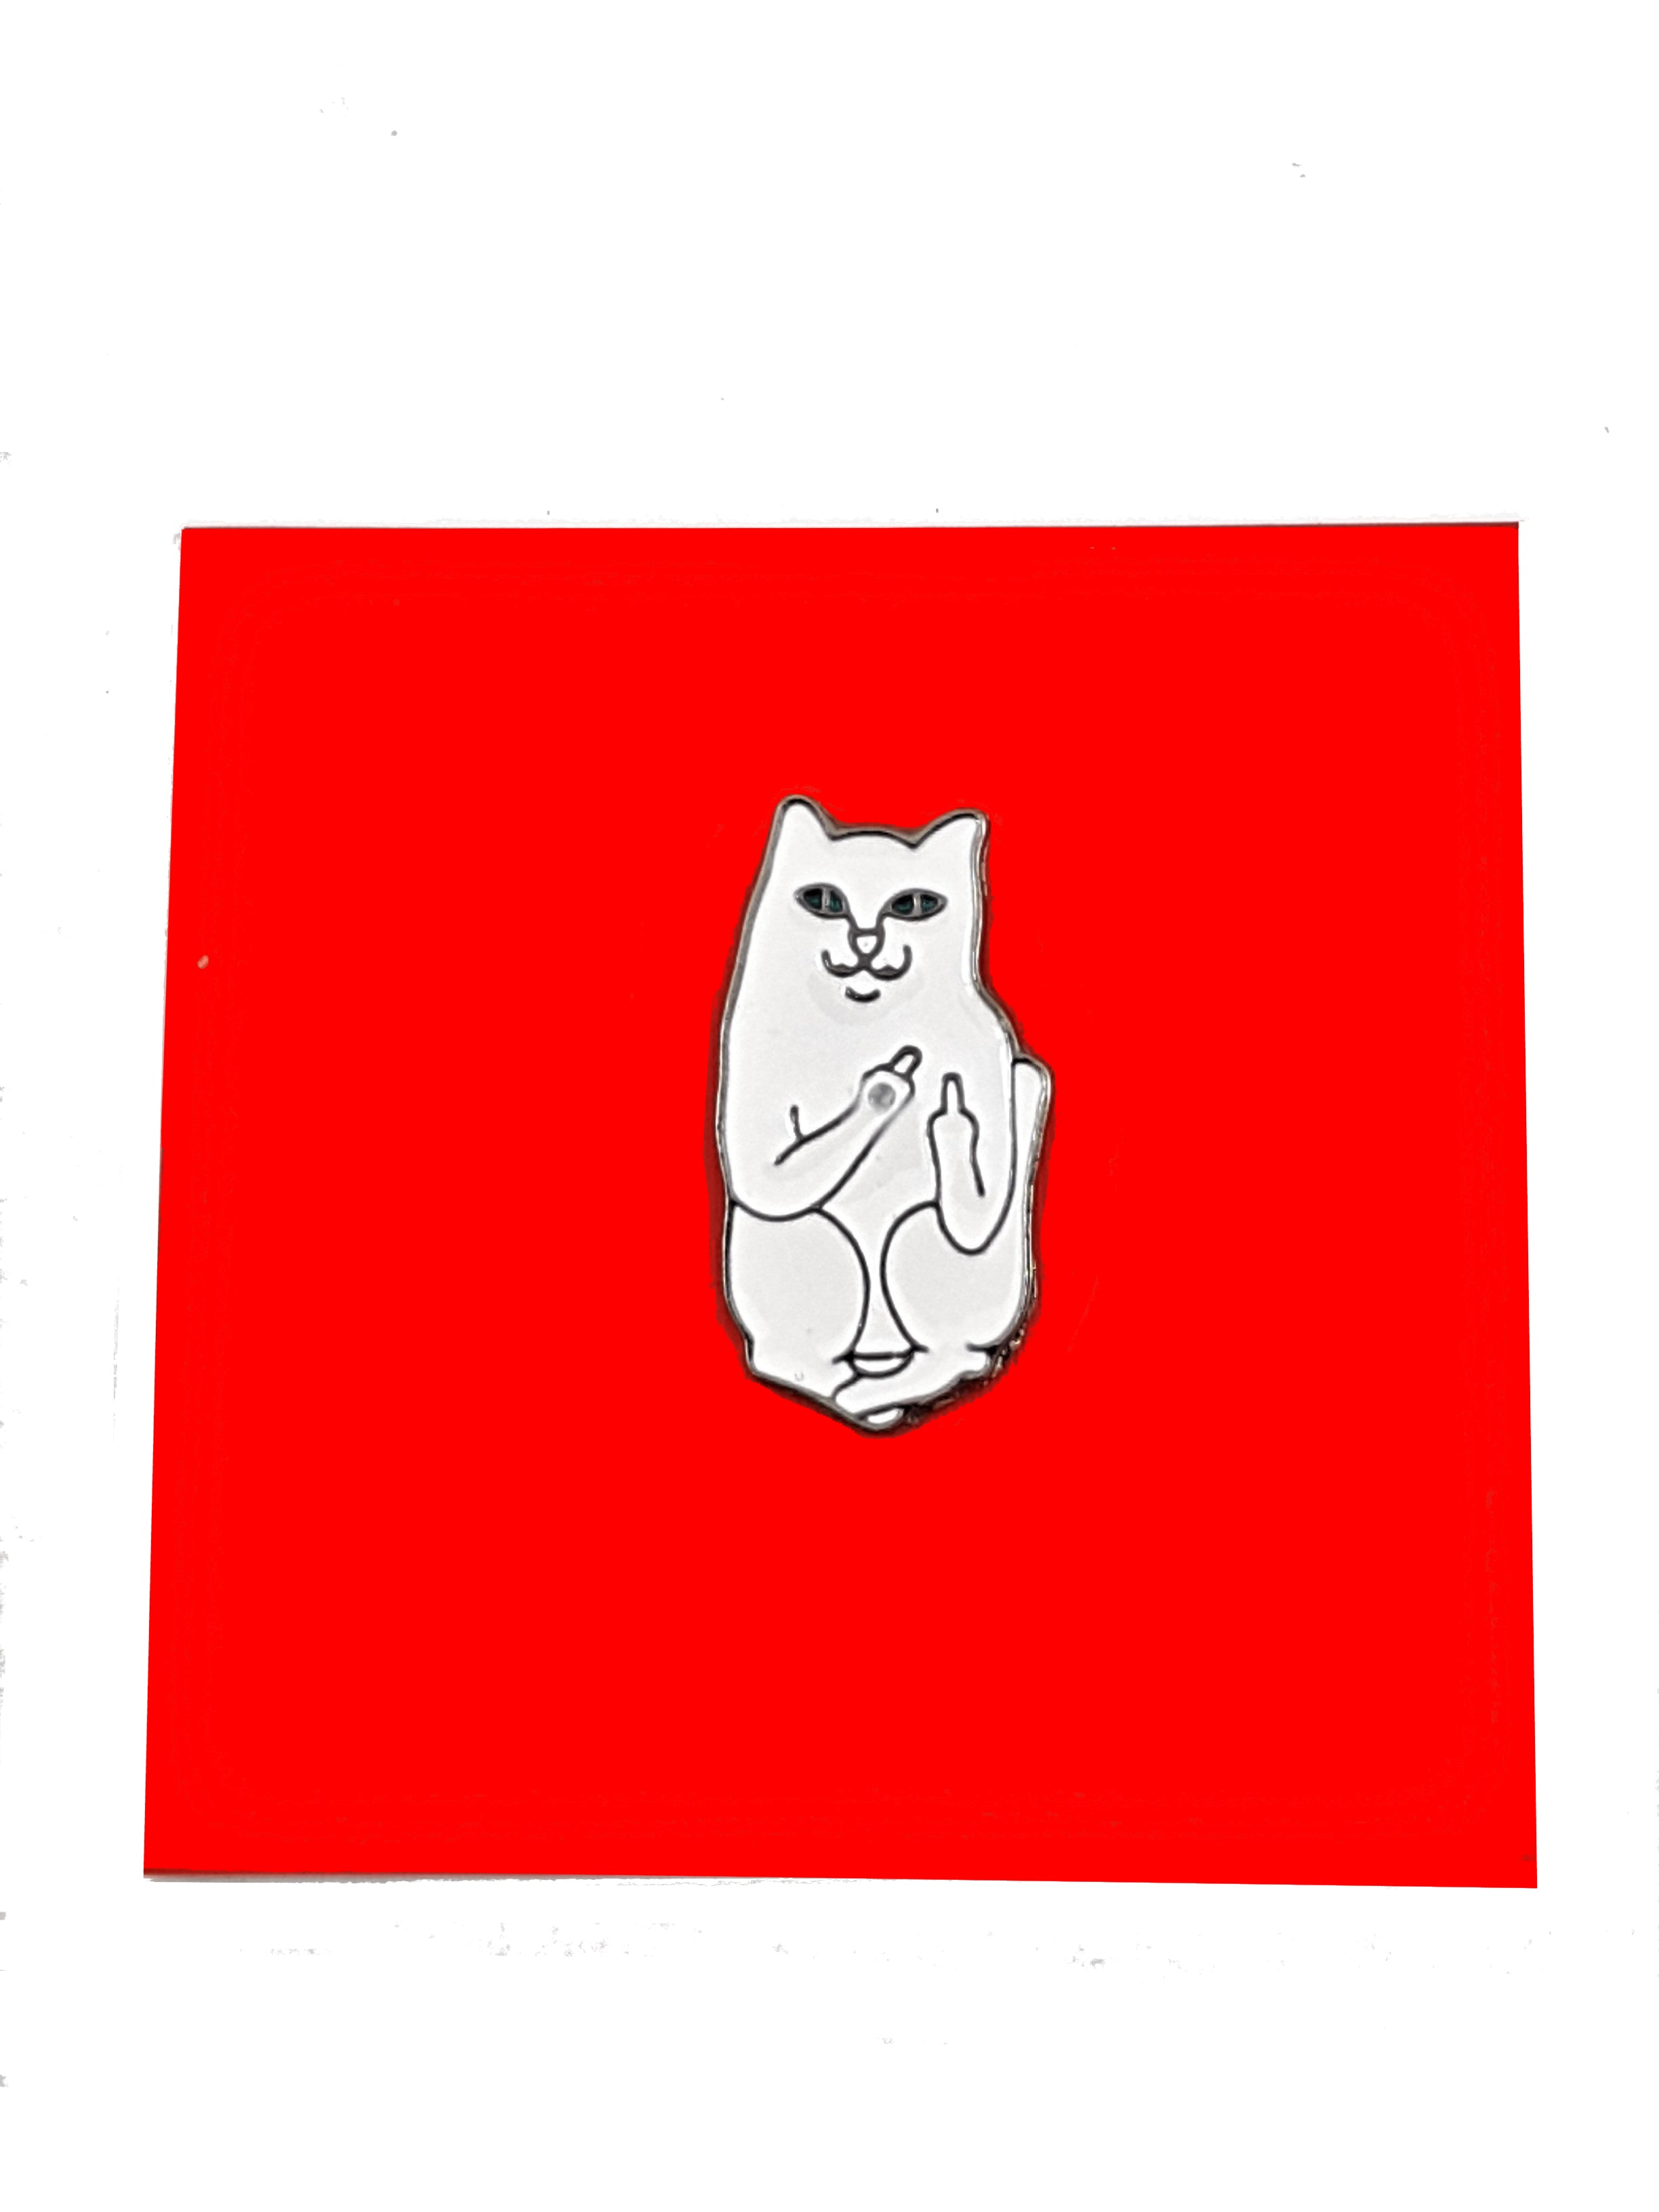 CAT FLIPPING THE BIRD ENAMEL PIN ON RED BACKGROUND